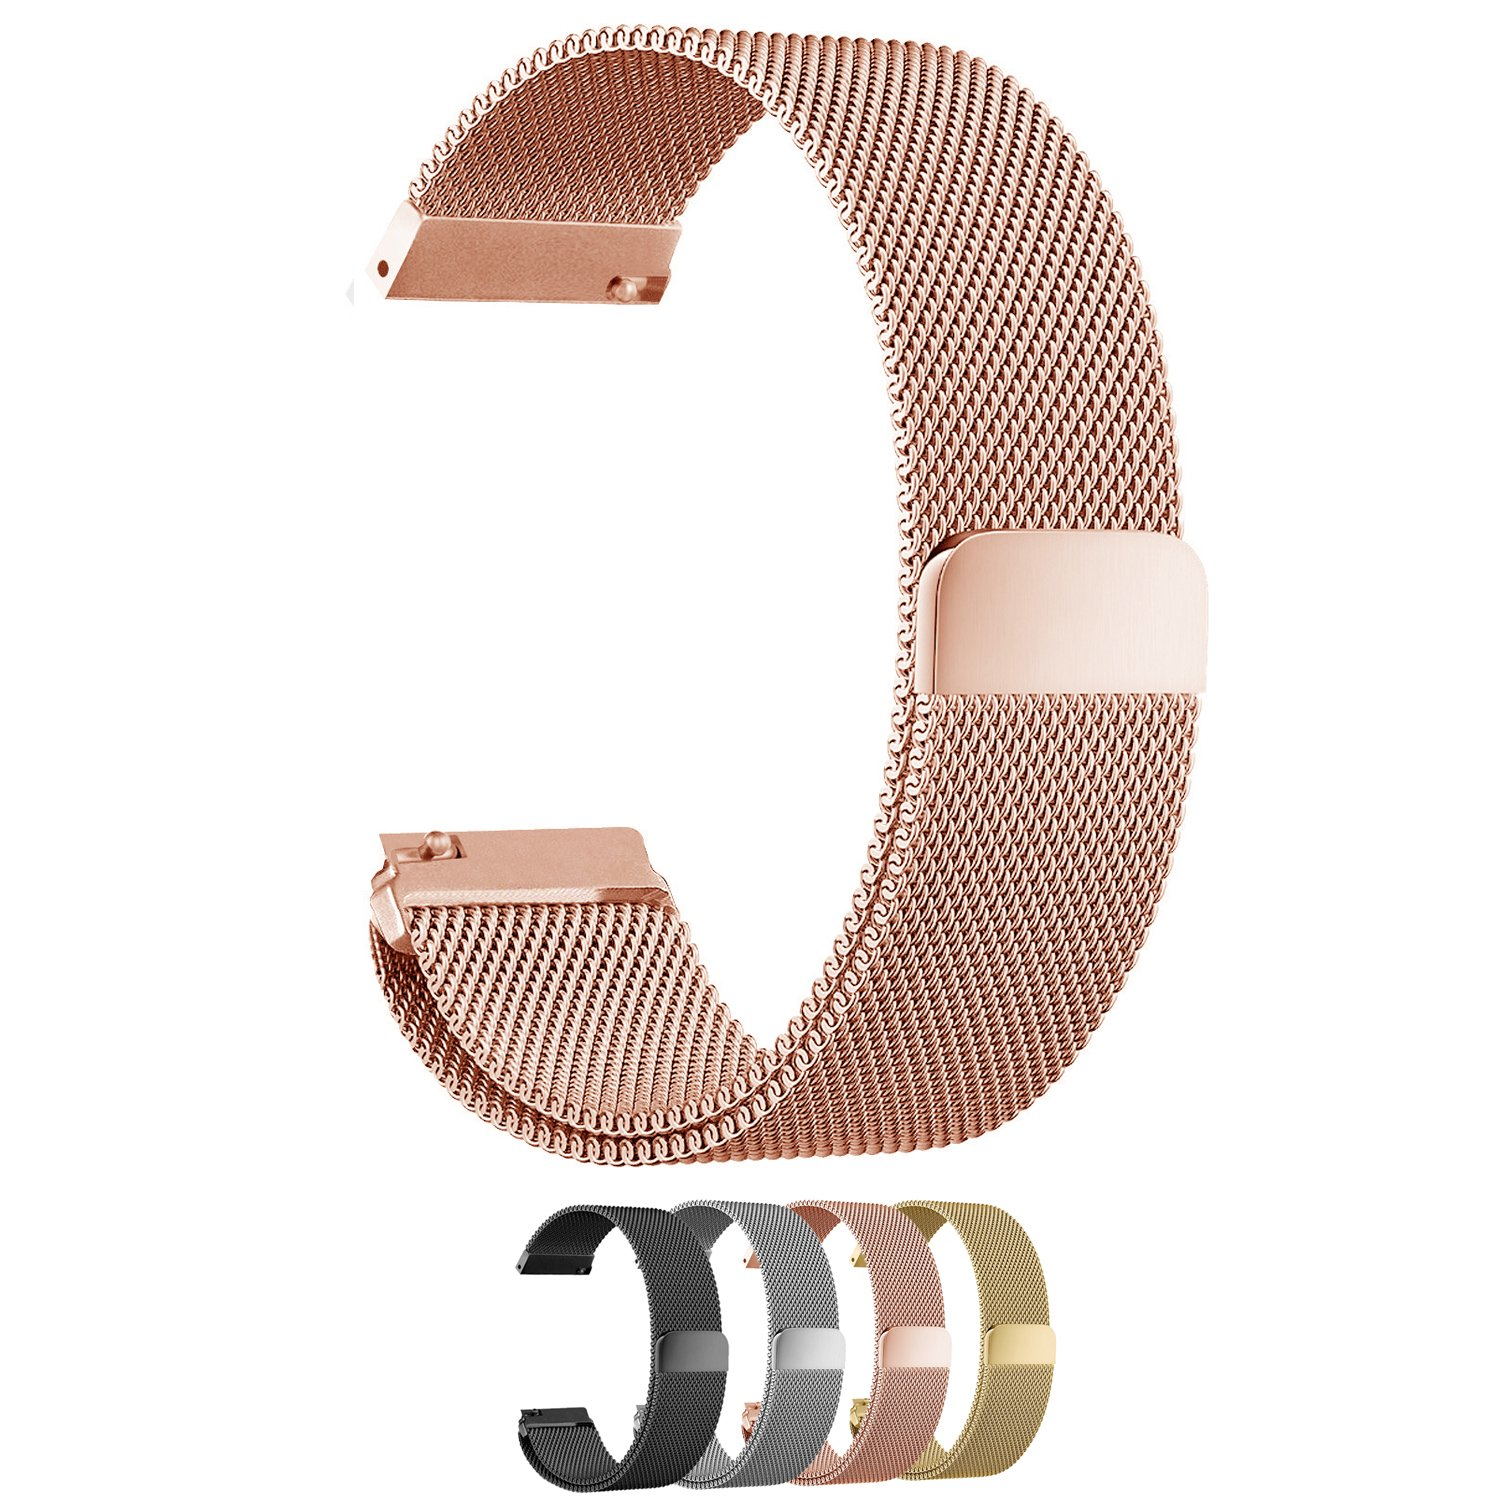 Cbin Quick Release Bracelet - Choice of Color and Width 18mm / 20mm / 22mm / 24mm Stainless Steel Fully Magnetic Closure Milanese Watch Bands for Men and Women (Rose gold, 18mm)